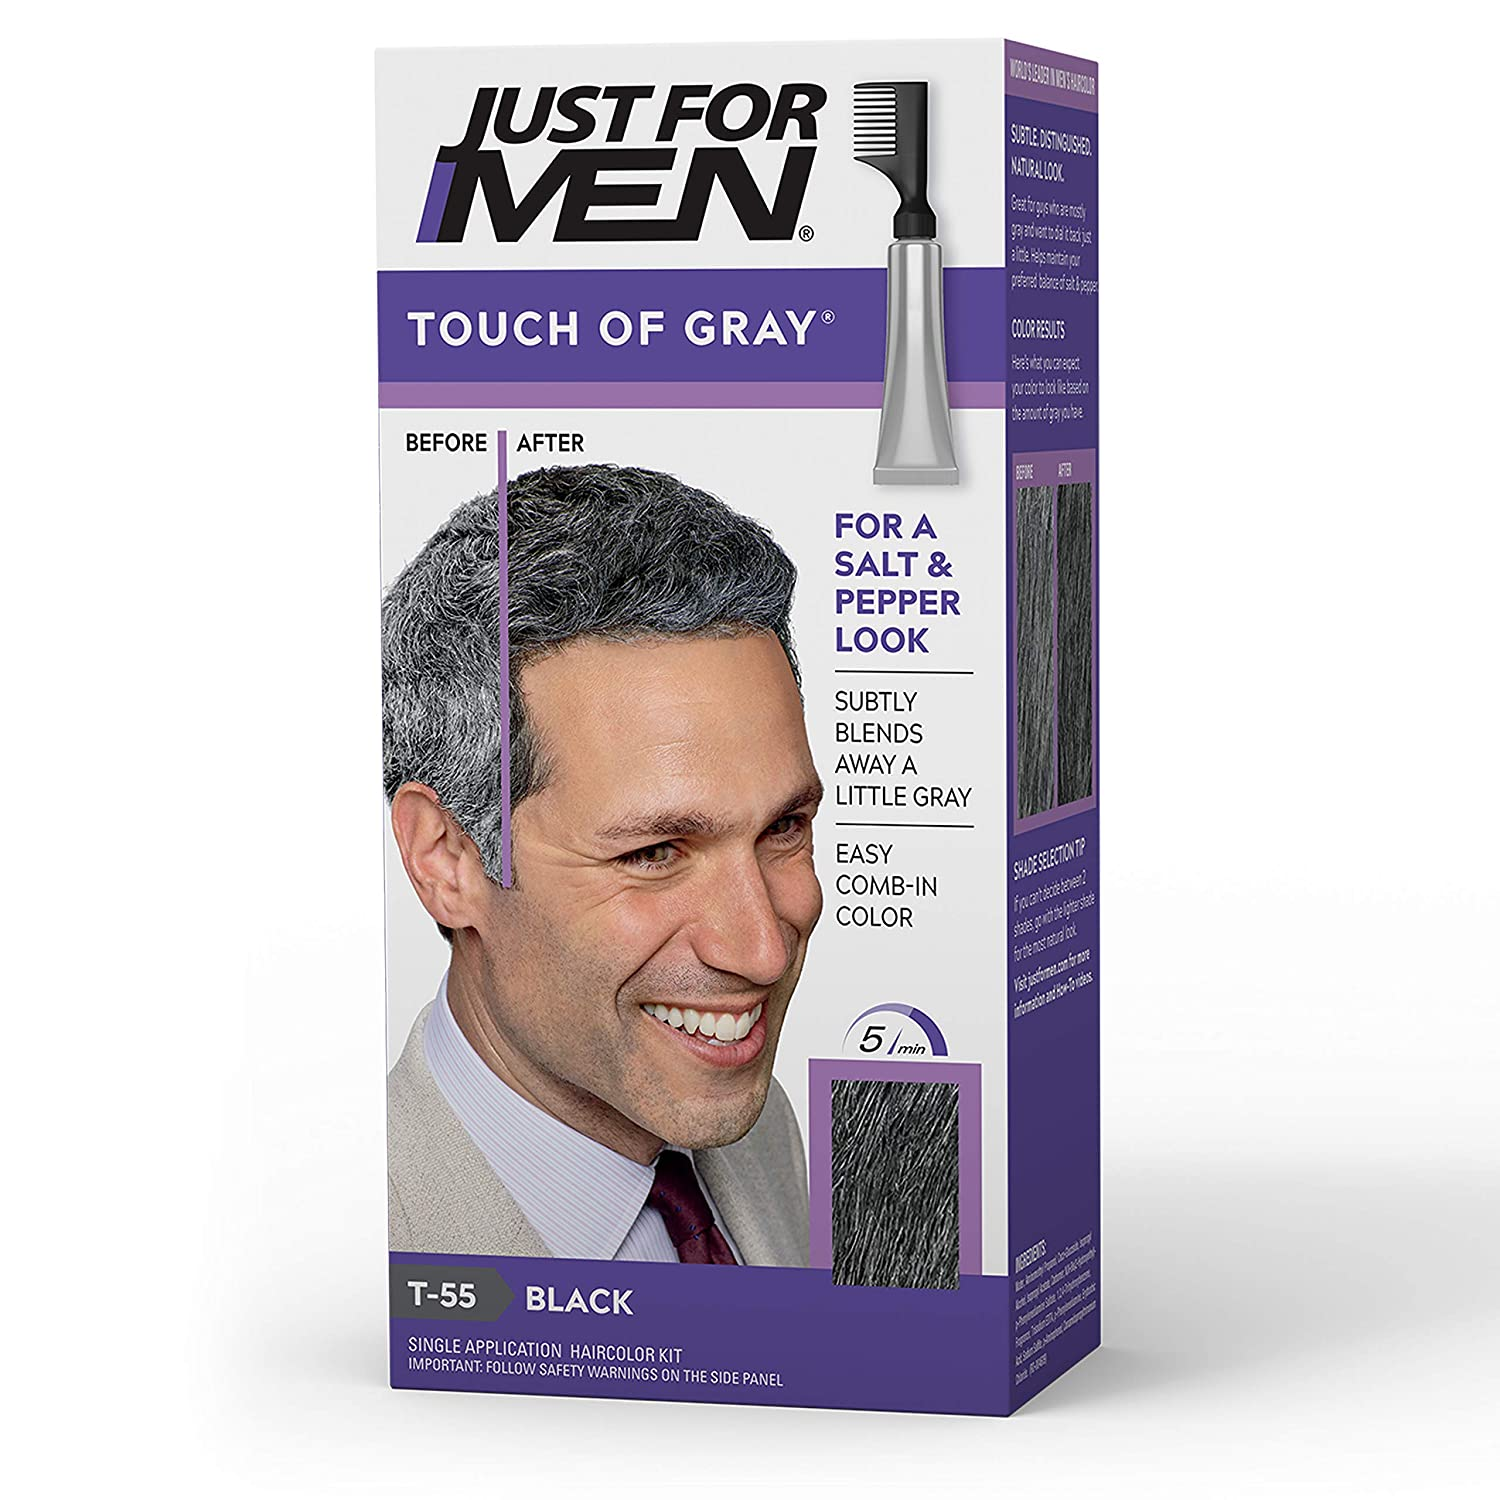 Amazon Com Just For Men Touch Of Grey Men S Hair Color Black 011509041388 Chemical Hair Dyes Beauty